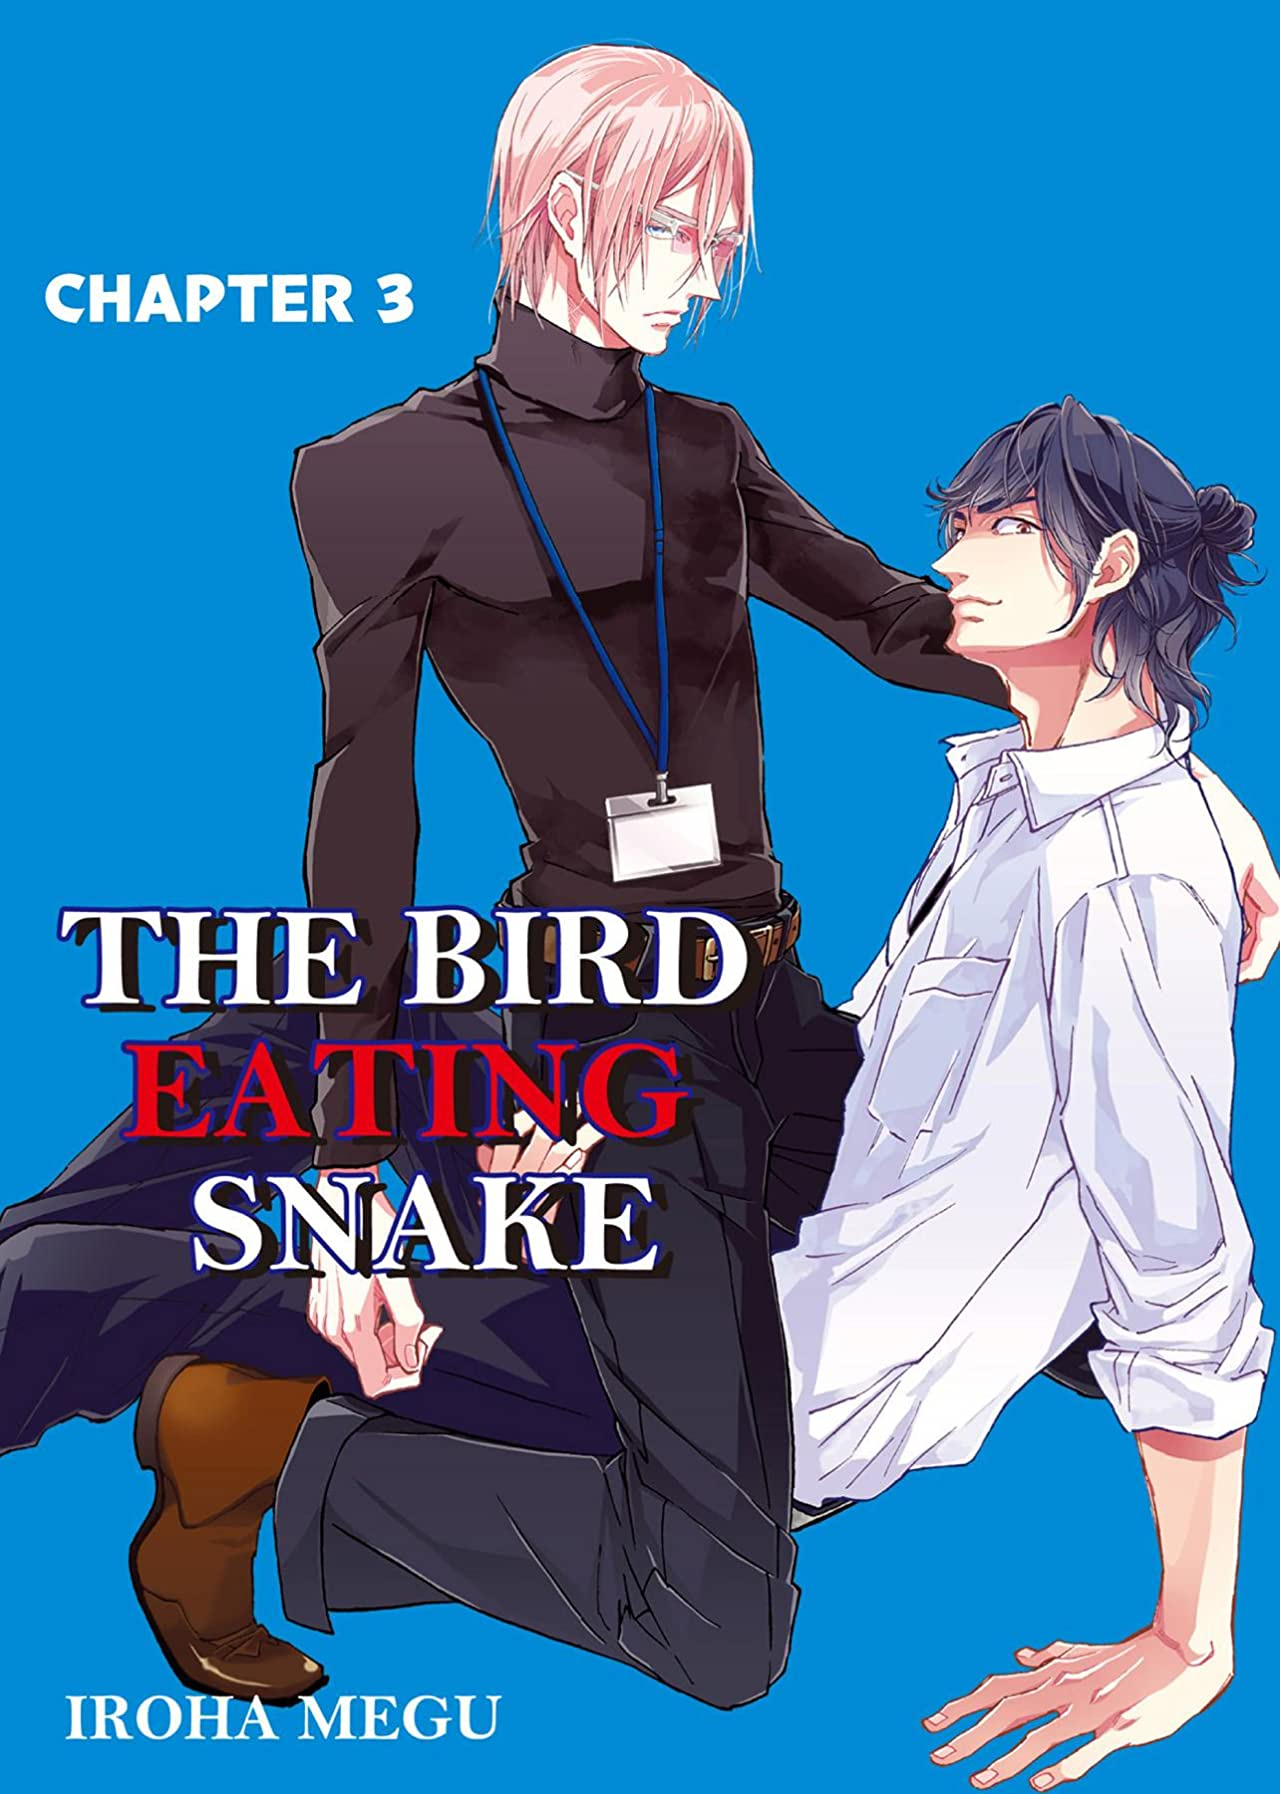 THE BIRD EATING SNAKE (Yaoi Manga) #3